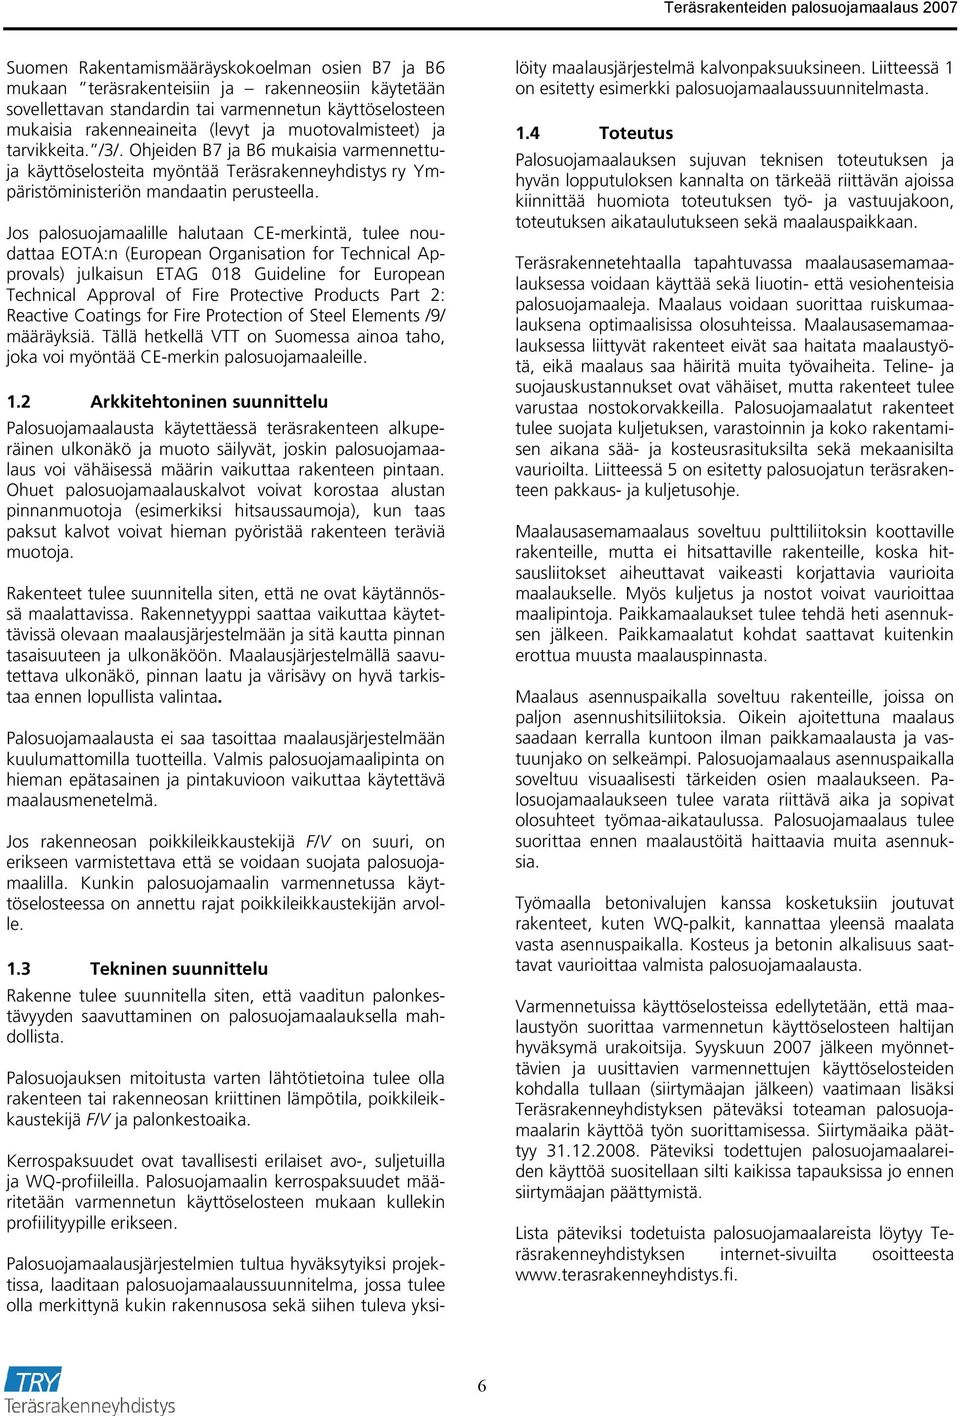 Jos palosuojamaalille halutaan CE-merkintä, tulee noudattaa EOTA:n (European Organisation for Technical Approvals) julkaisun ETAG 018 Guideline for European Technical Approval of Fire Protective